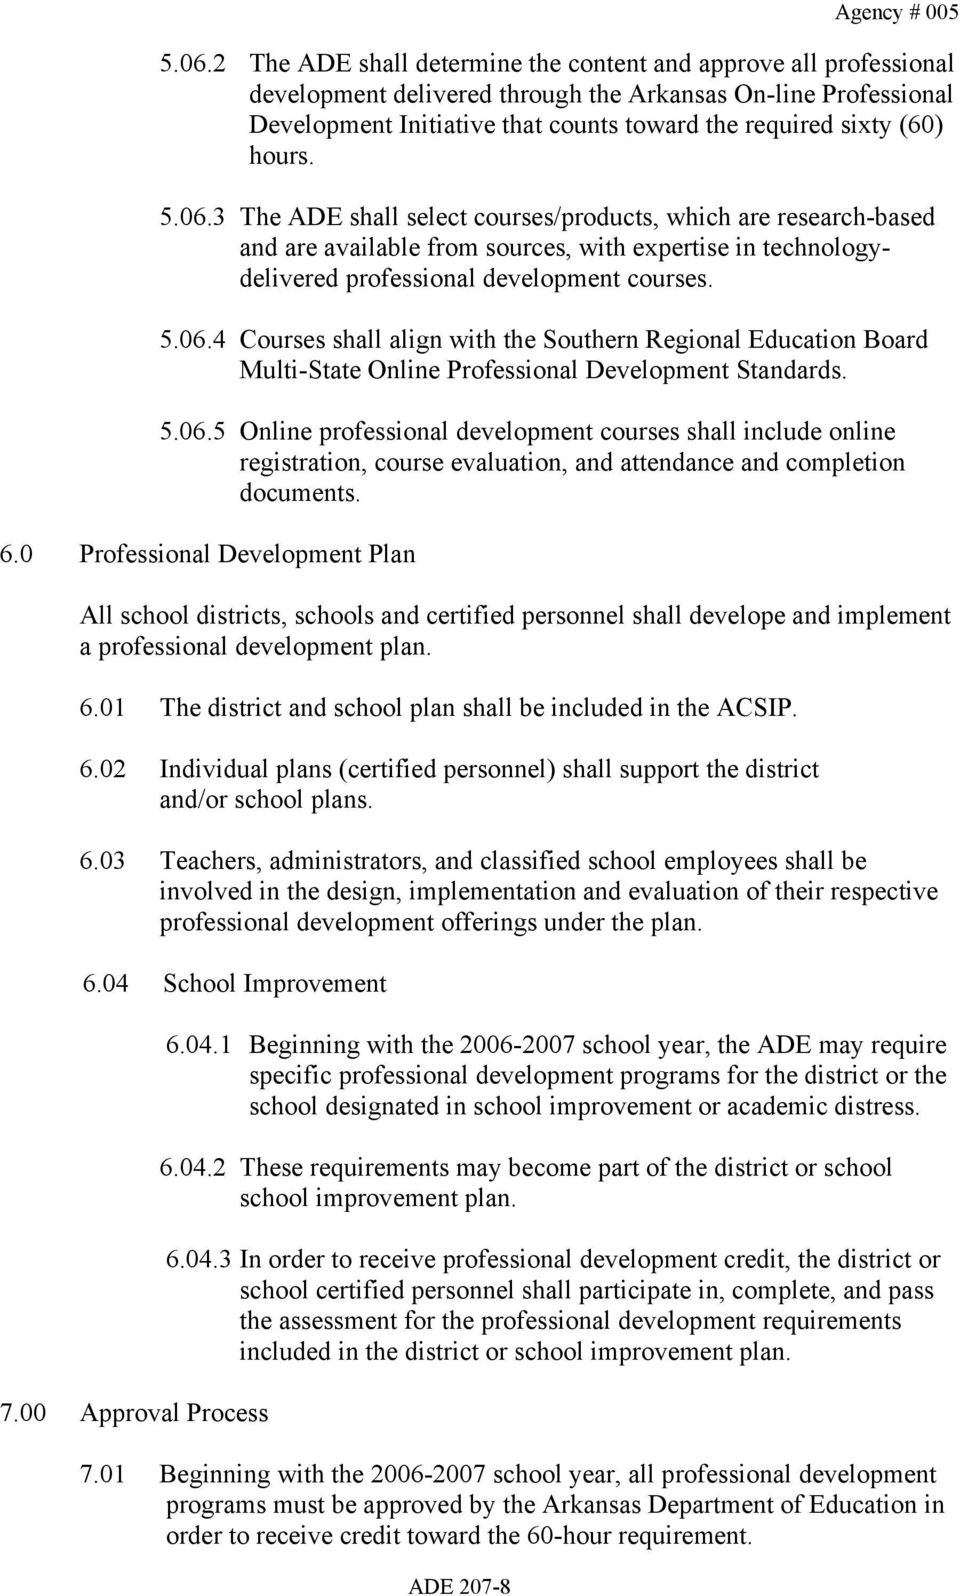 hours. 5.06.3 The ADE shall select courses/products, which are research-based and are available from sources, with expertise in technologydelivered professional development courses. 5.06.4 Courses shall align with the Southern Regional Education Board Multi-State Online Professional Development Standards.